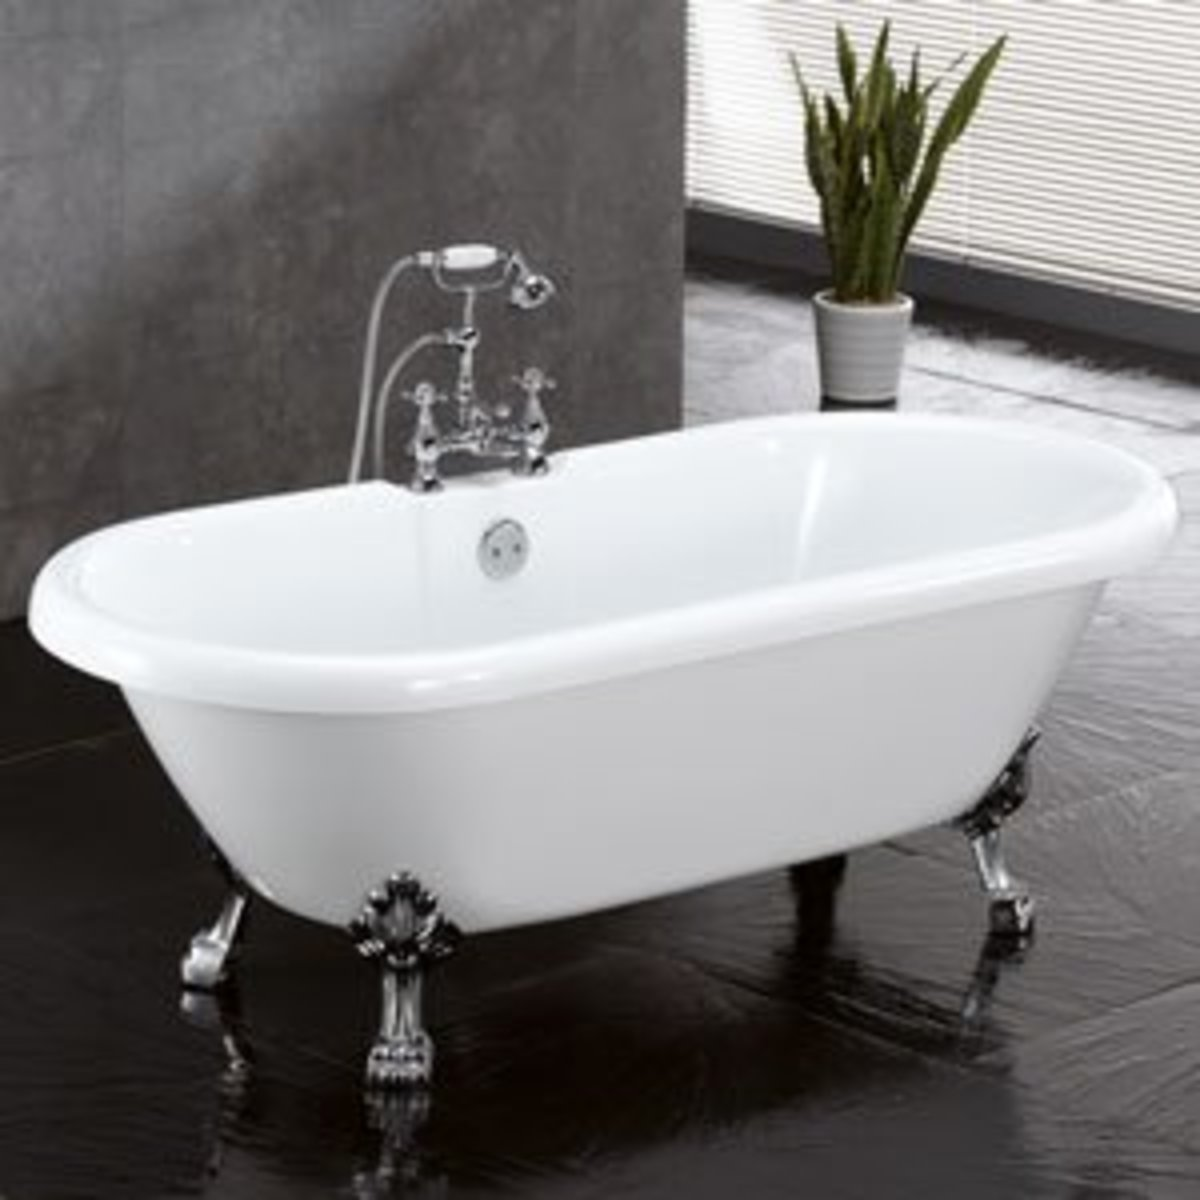 vintage tubs and bath fixtures dengarden. Black Bedroom Furniture Sets. Home Design Ideas